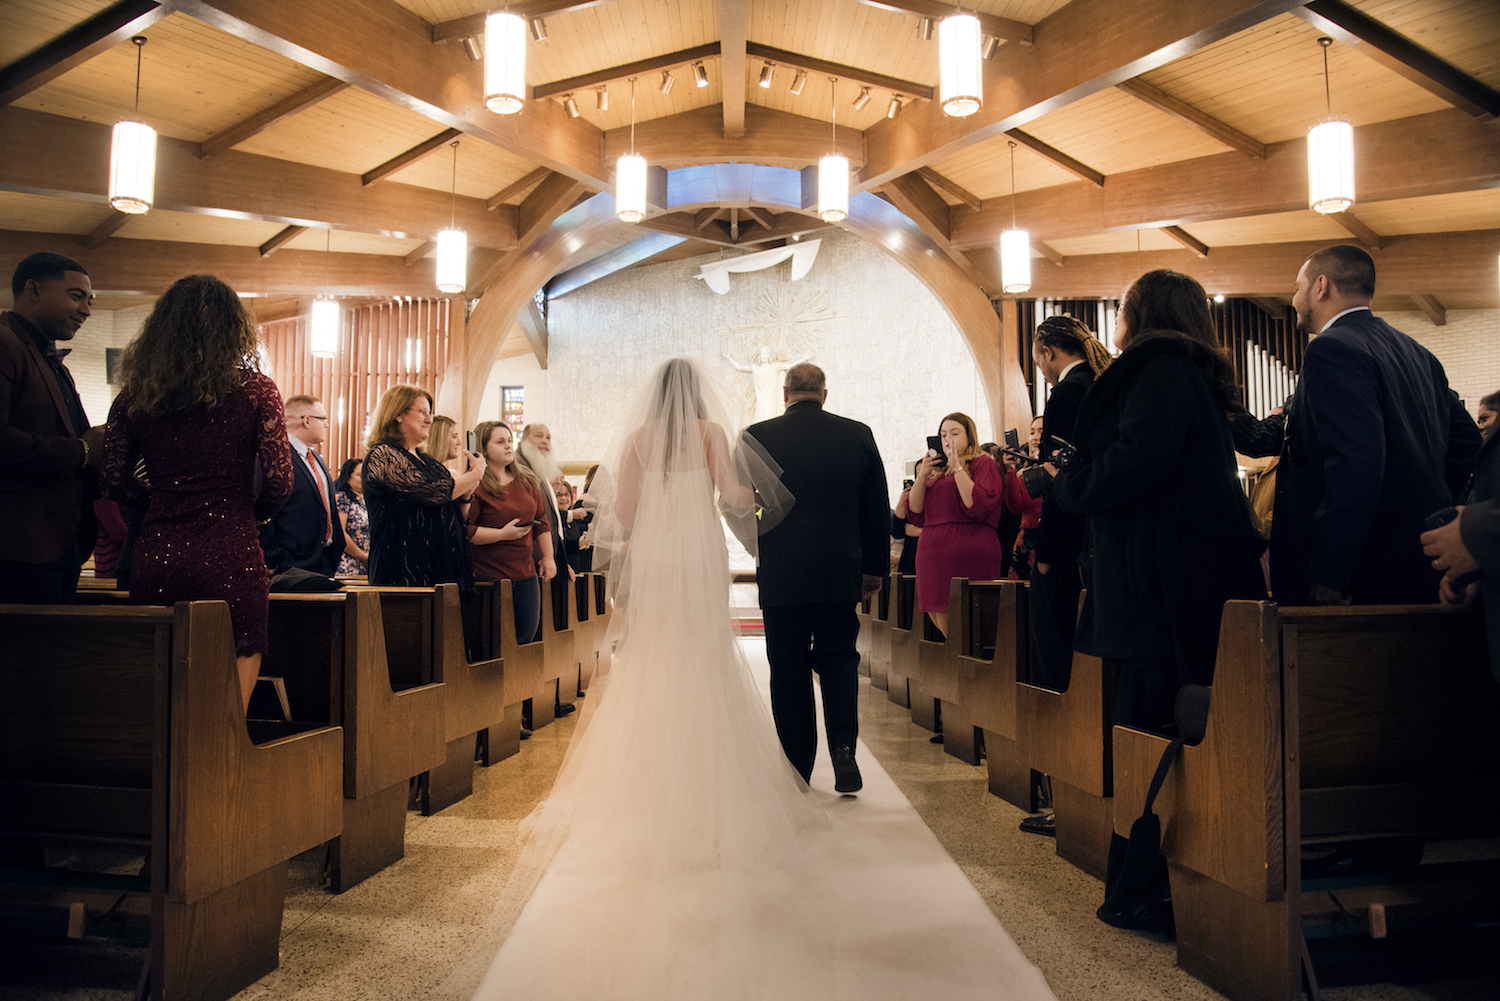 sylvia-dad-walking-down-aisle-church-ceremony-wedding-photography-nj